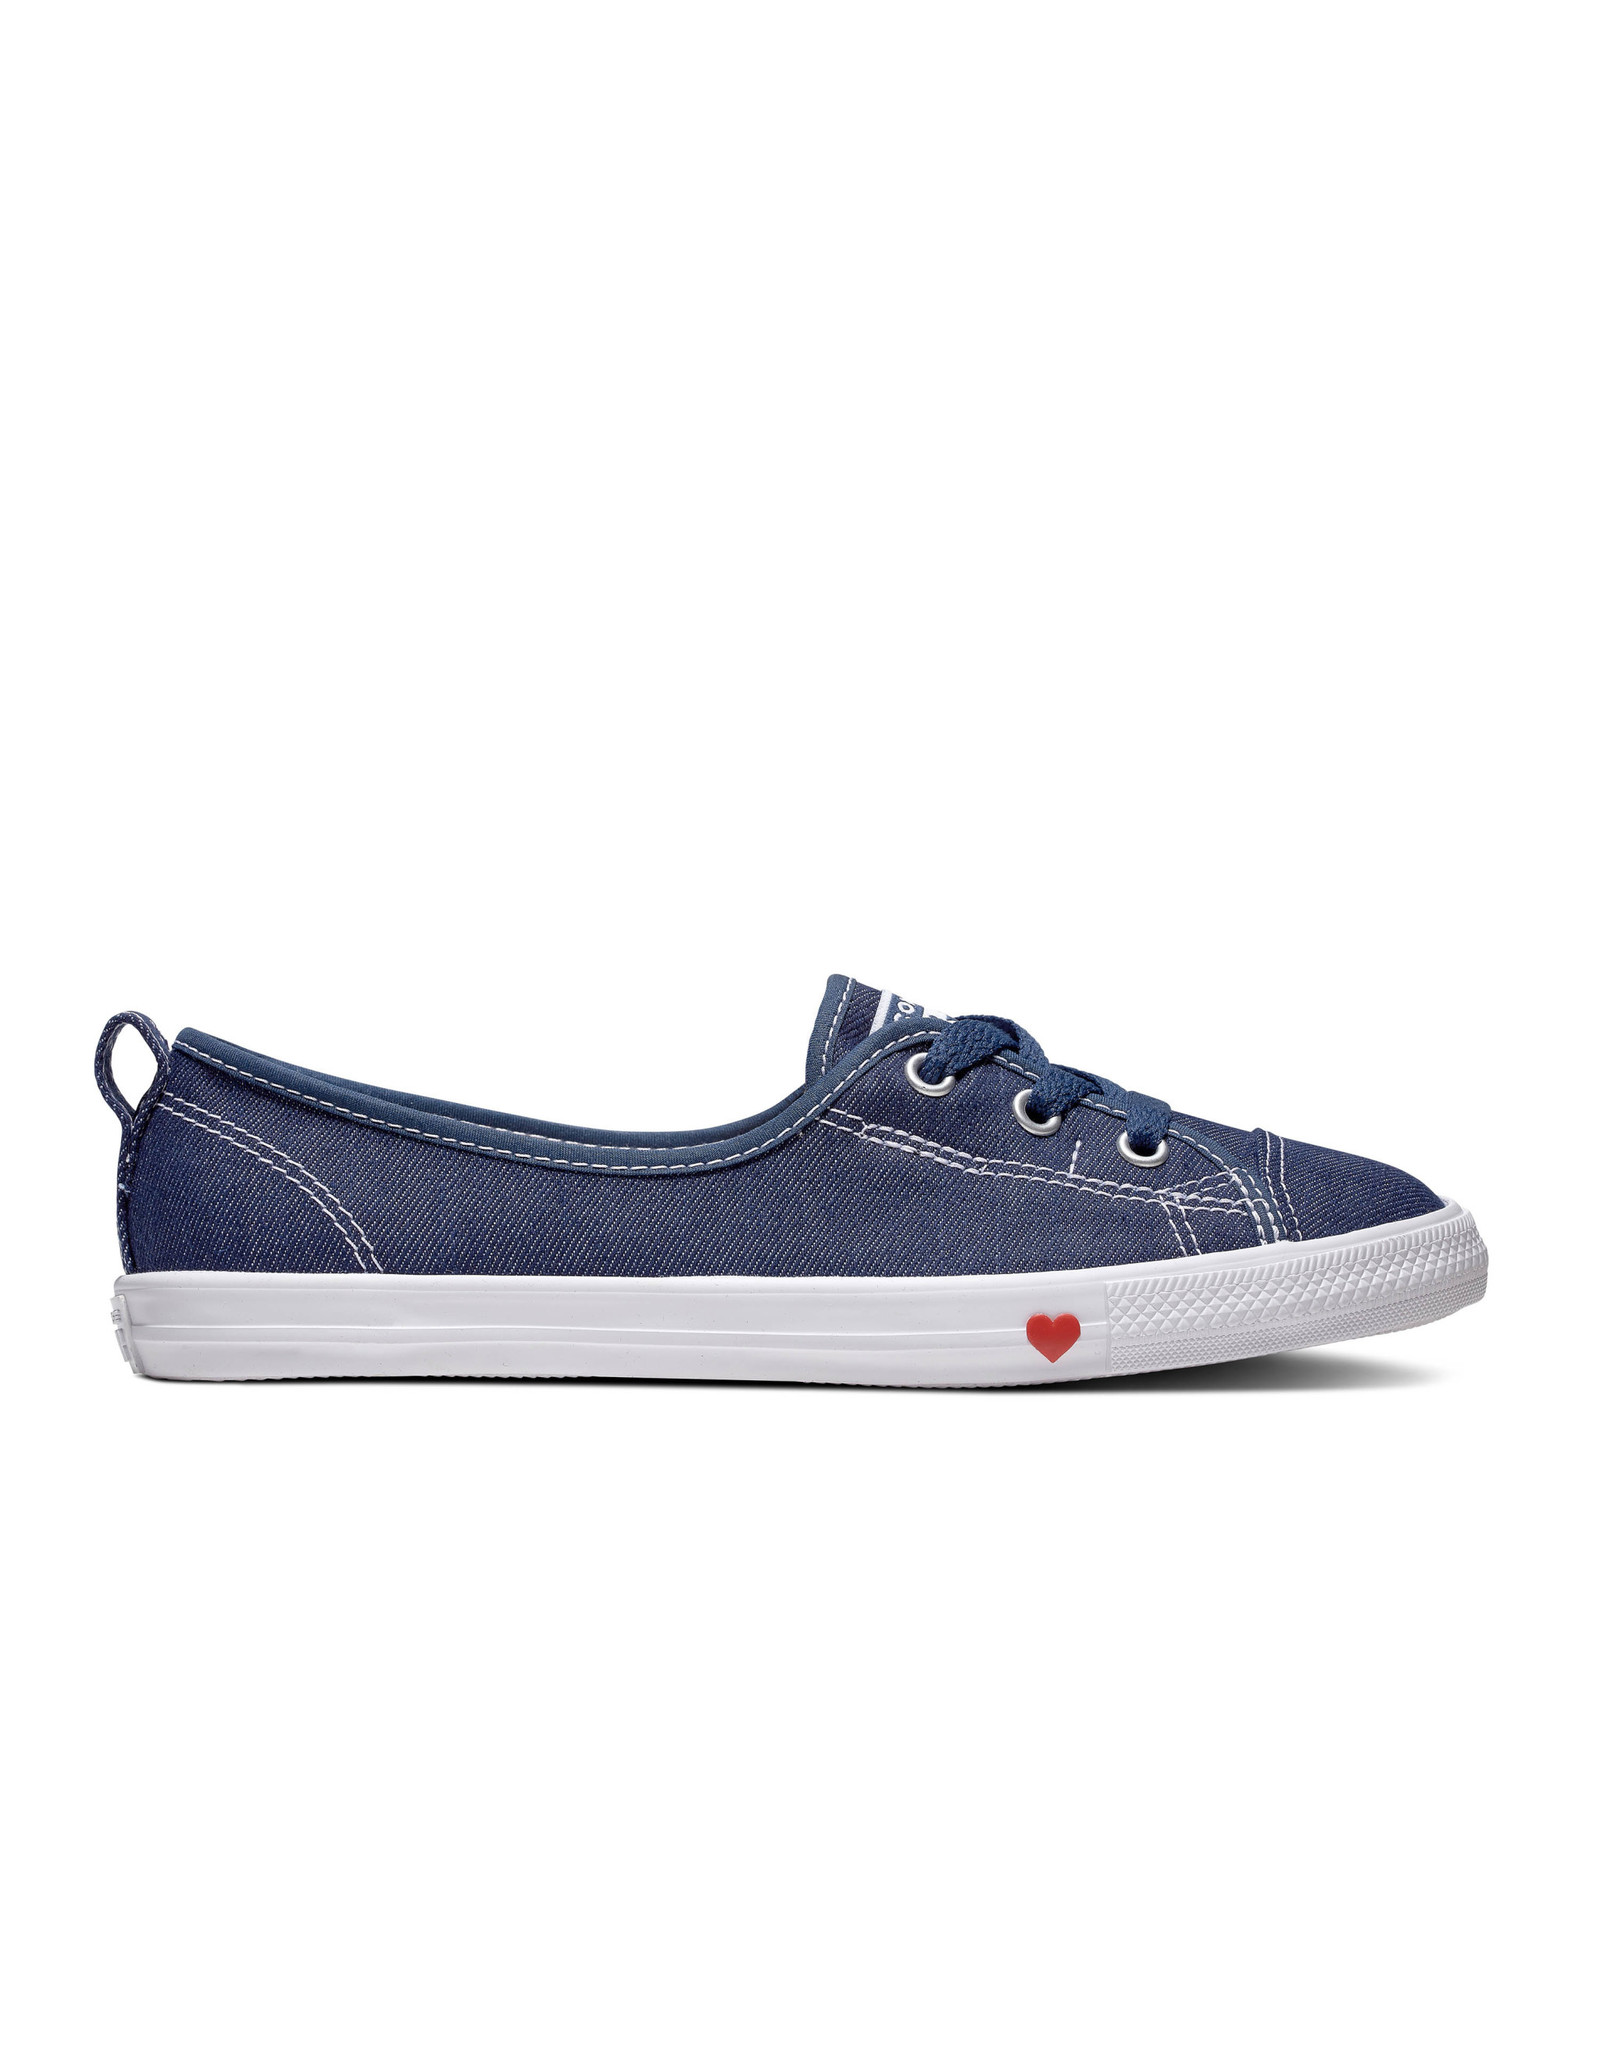 CONVERSE CHUCK TAYLOR ALL STAR BALLET LACE SLIP INDIGO/WHITE C983IN-563493C